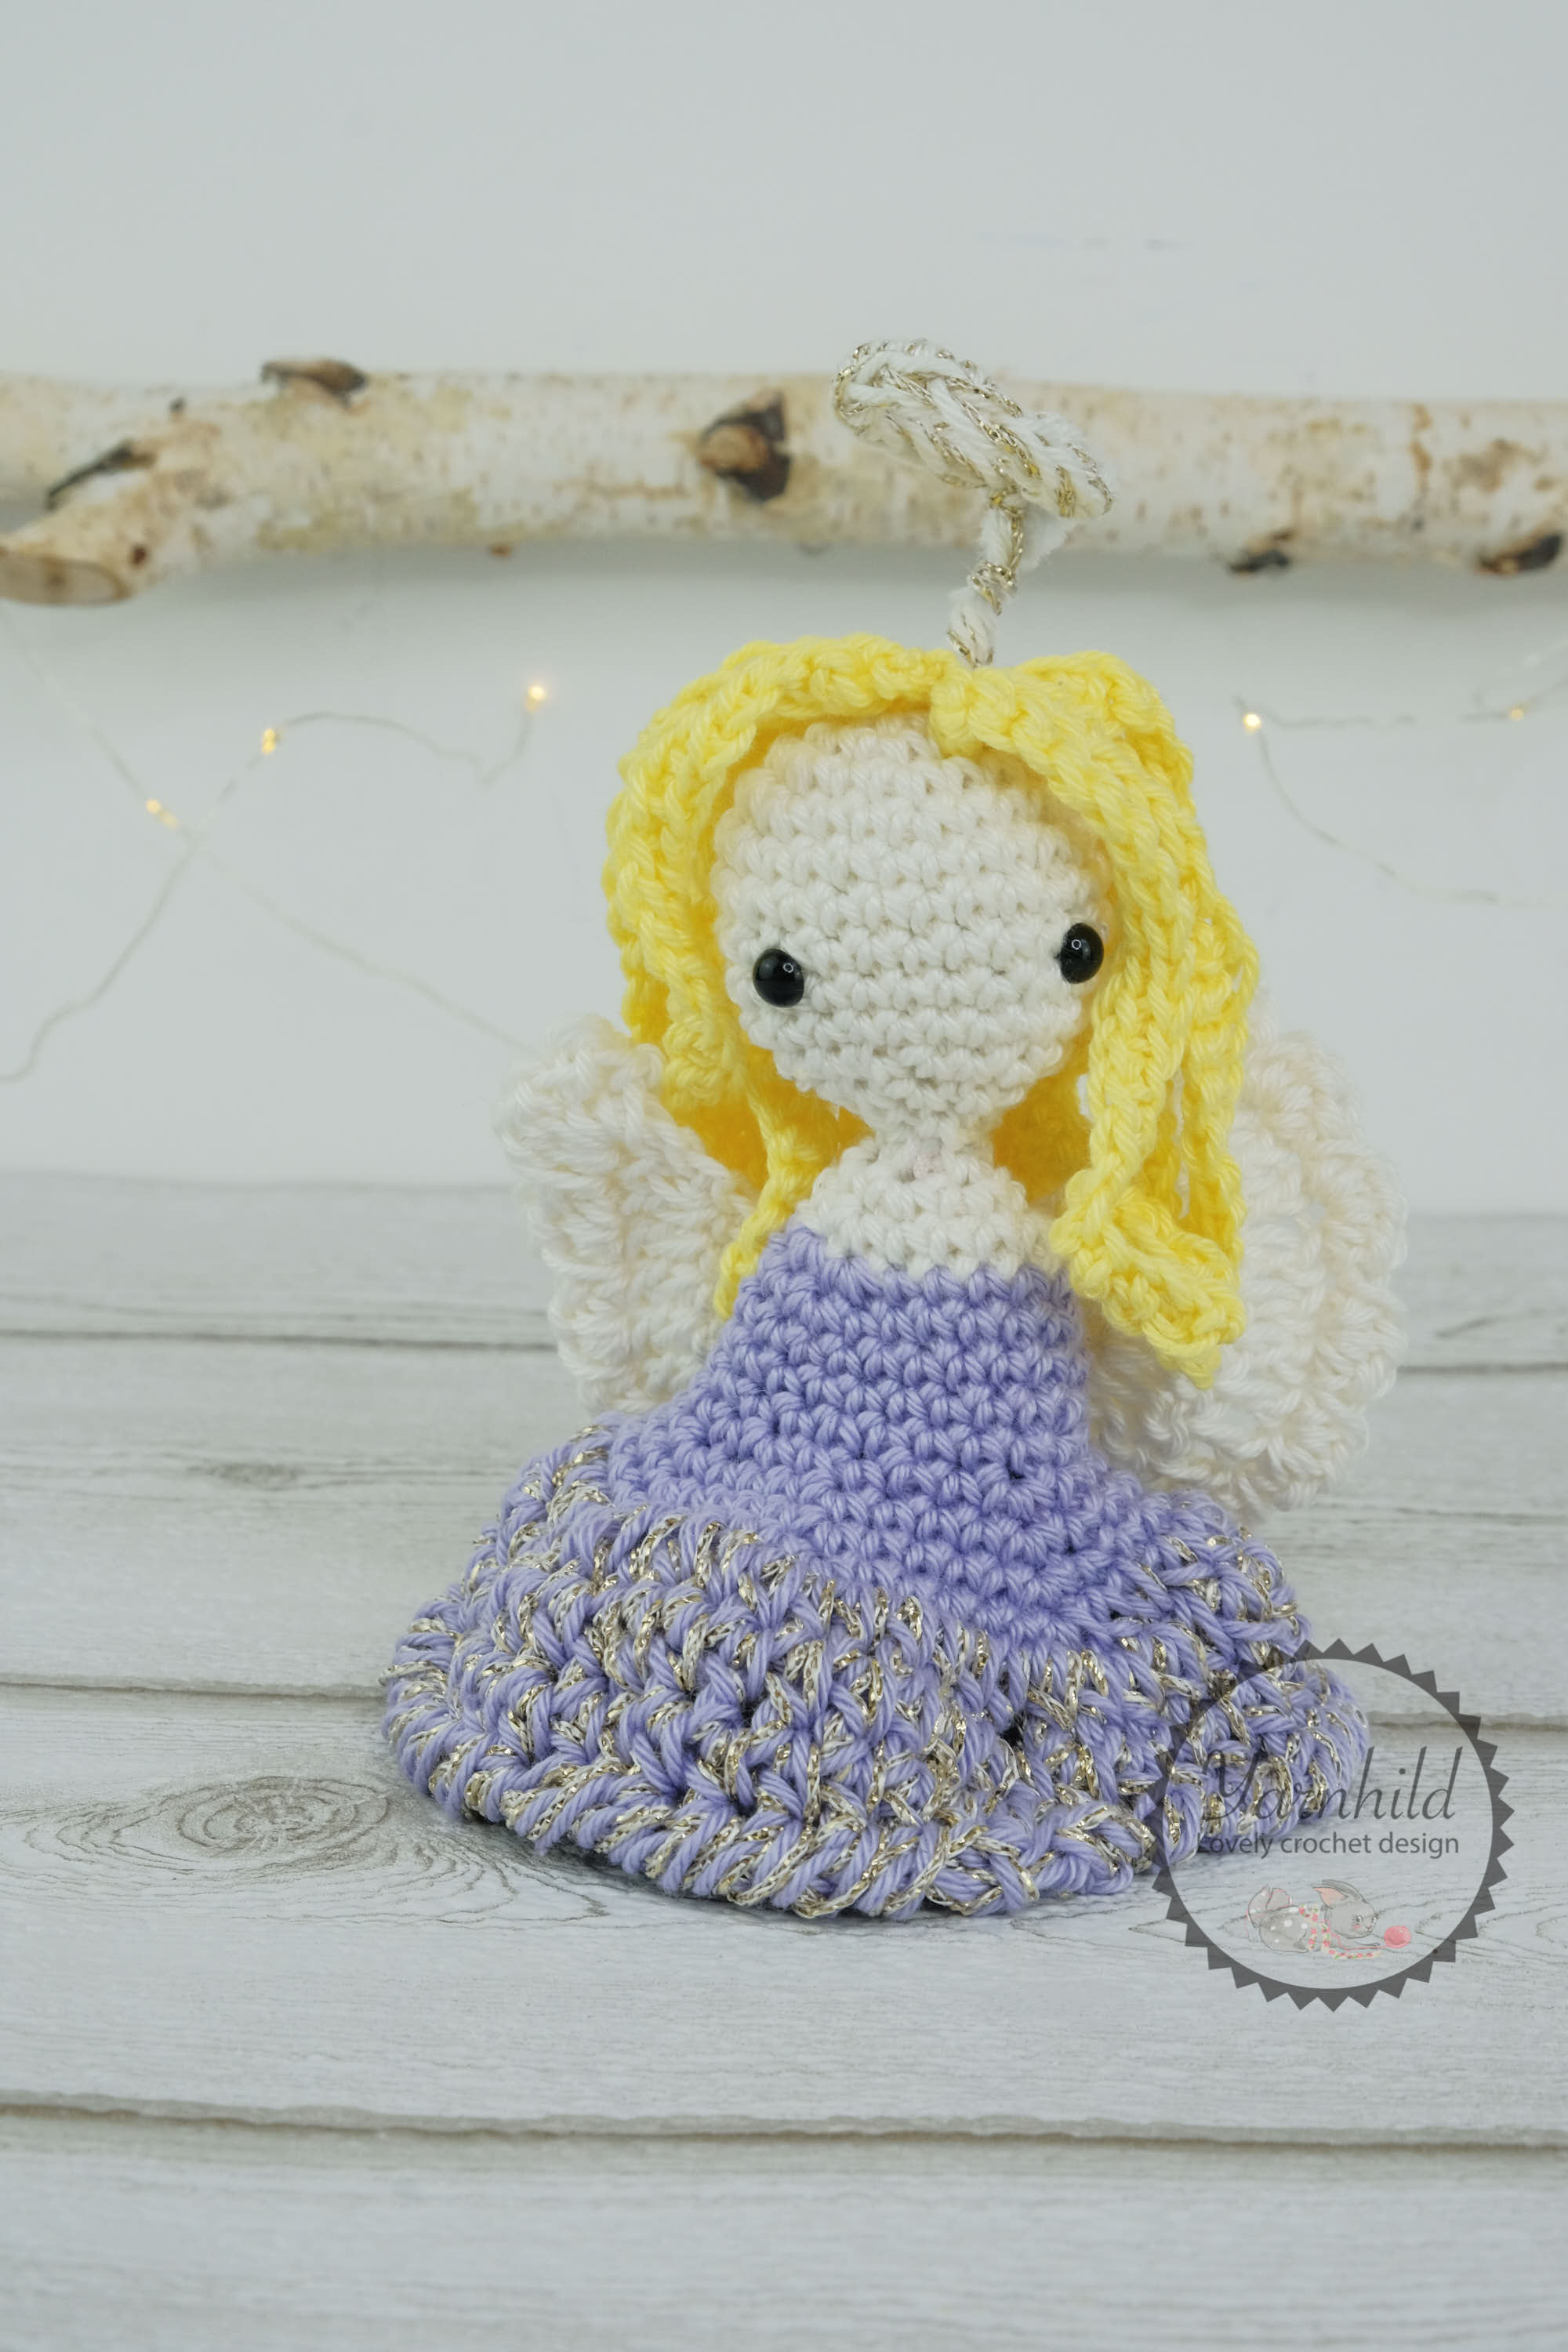 Amigurumi Today - crochet patterns and tutorials | Apps | 148Apps | 3000x2000